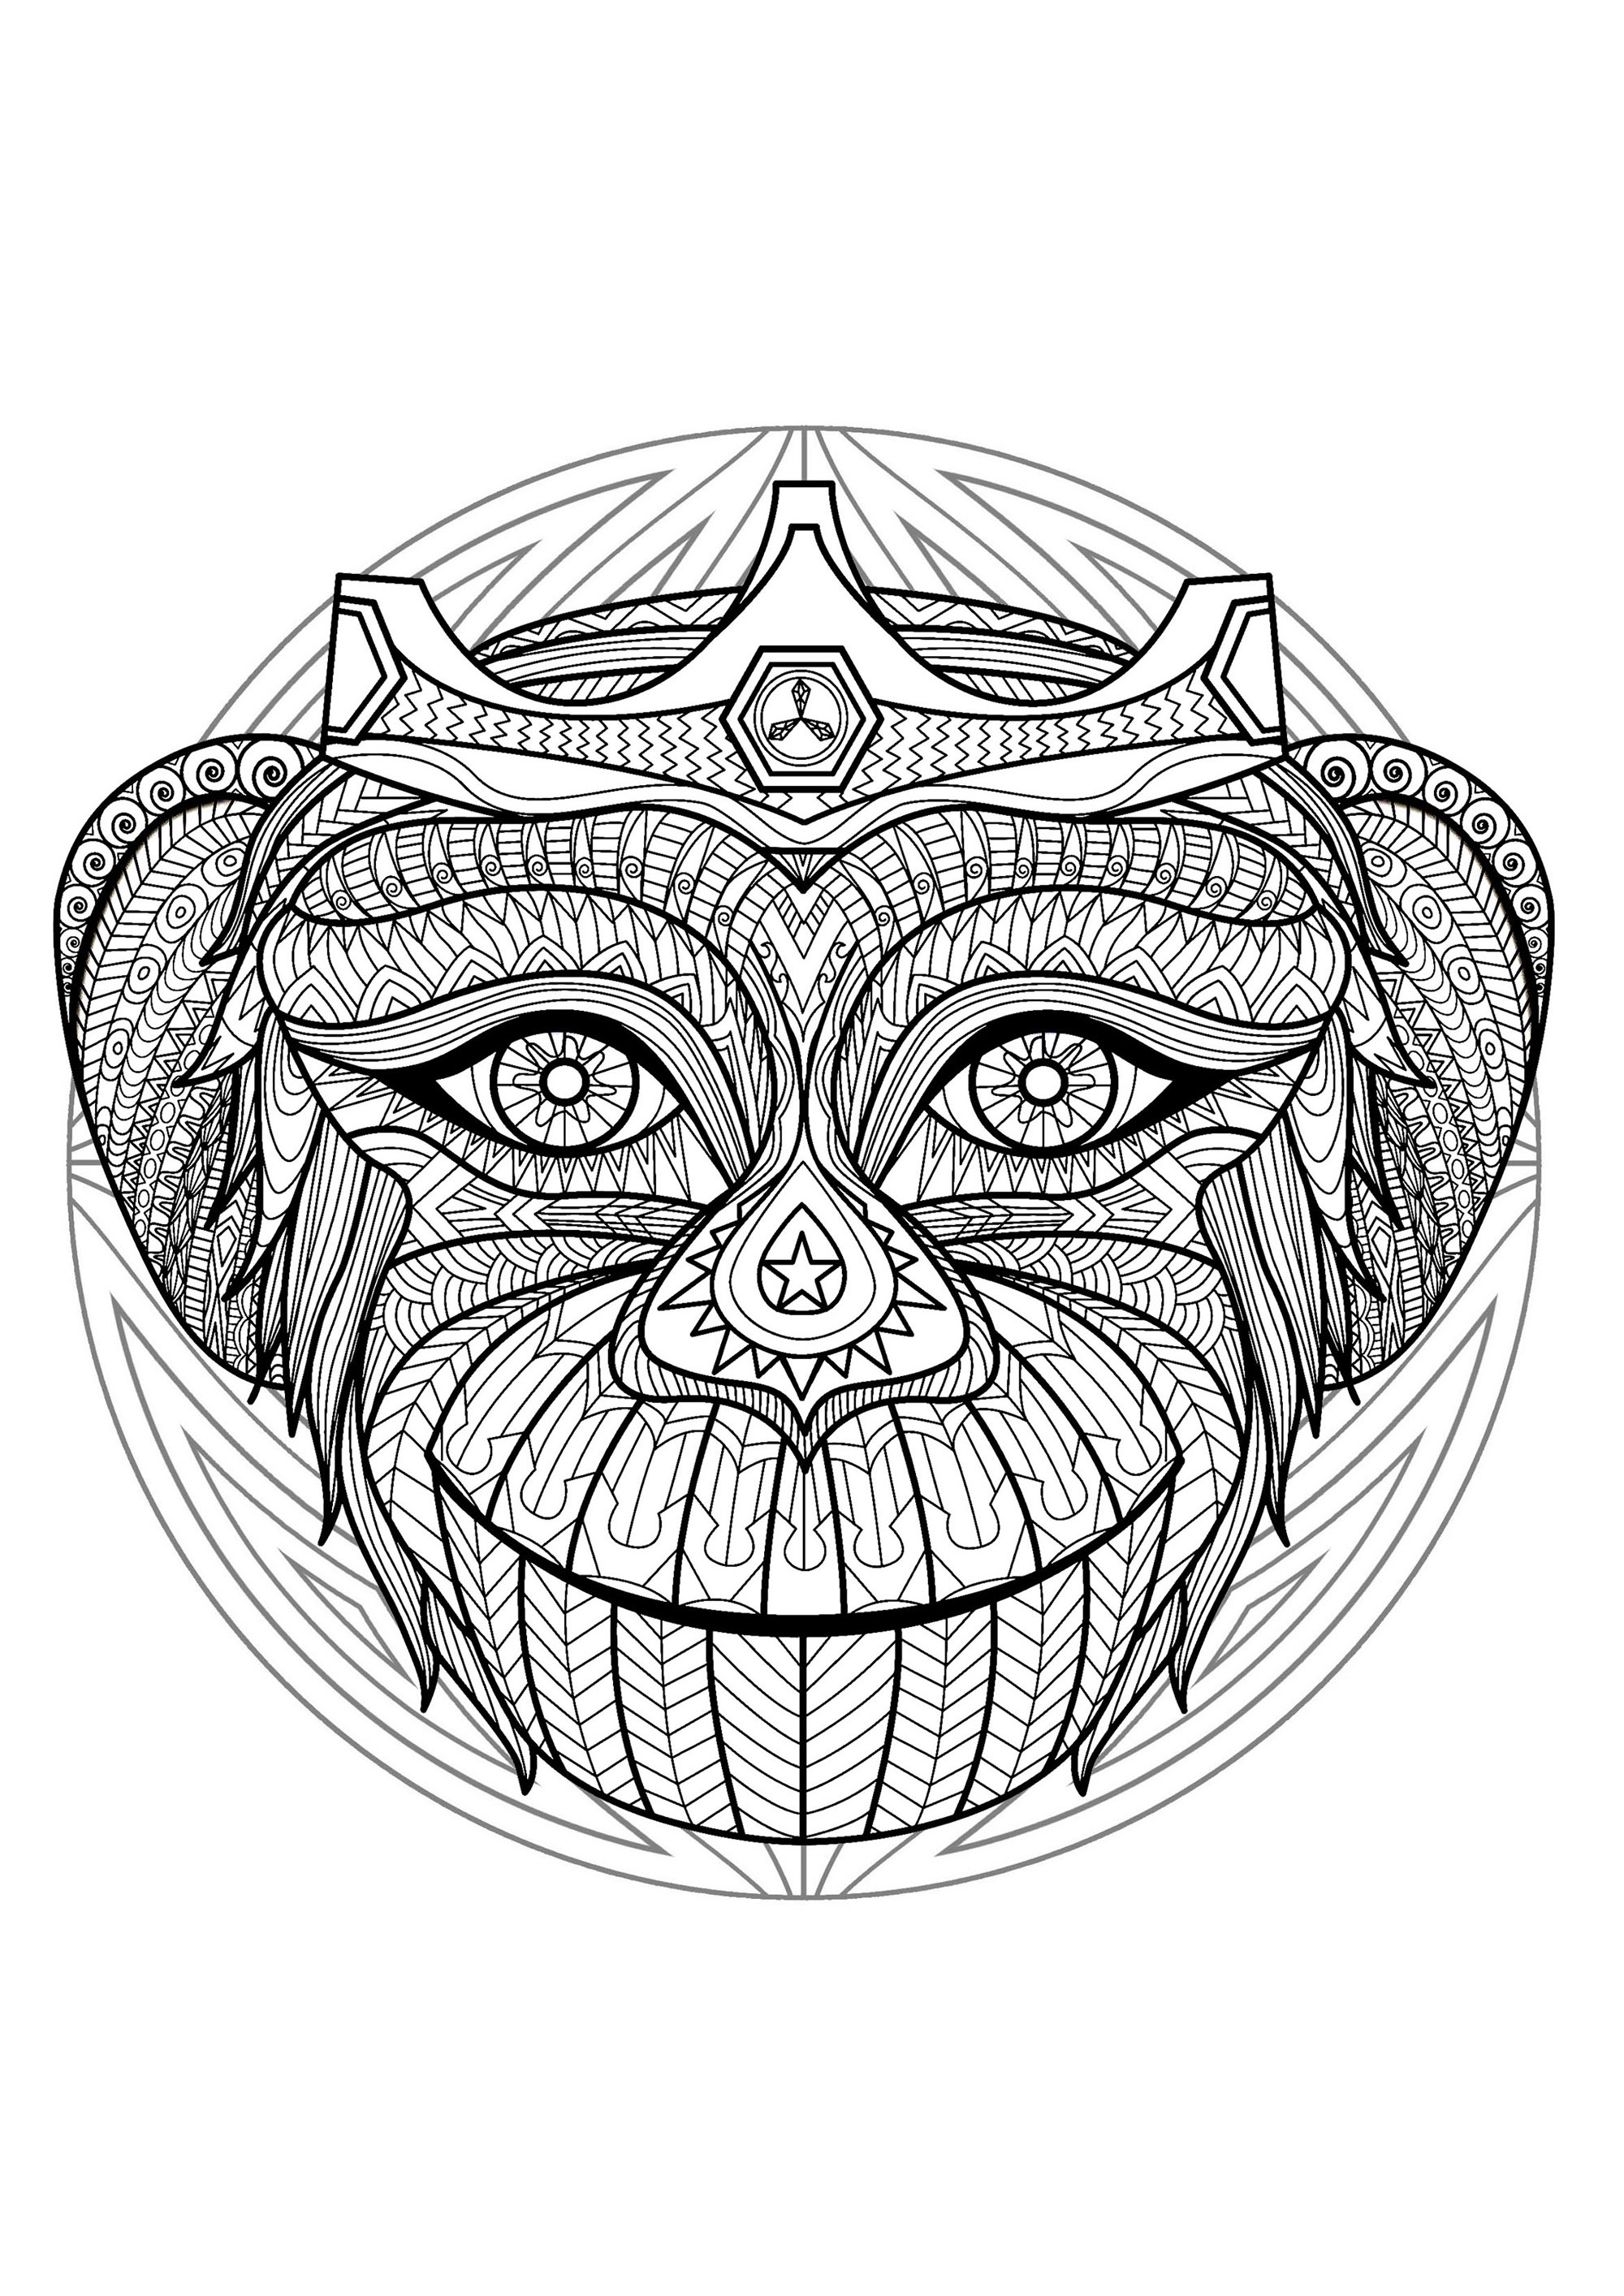 Mandala With Beautiful Monkey Head And Geometric Patterns